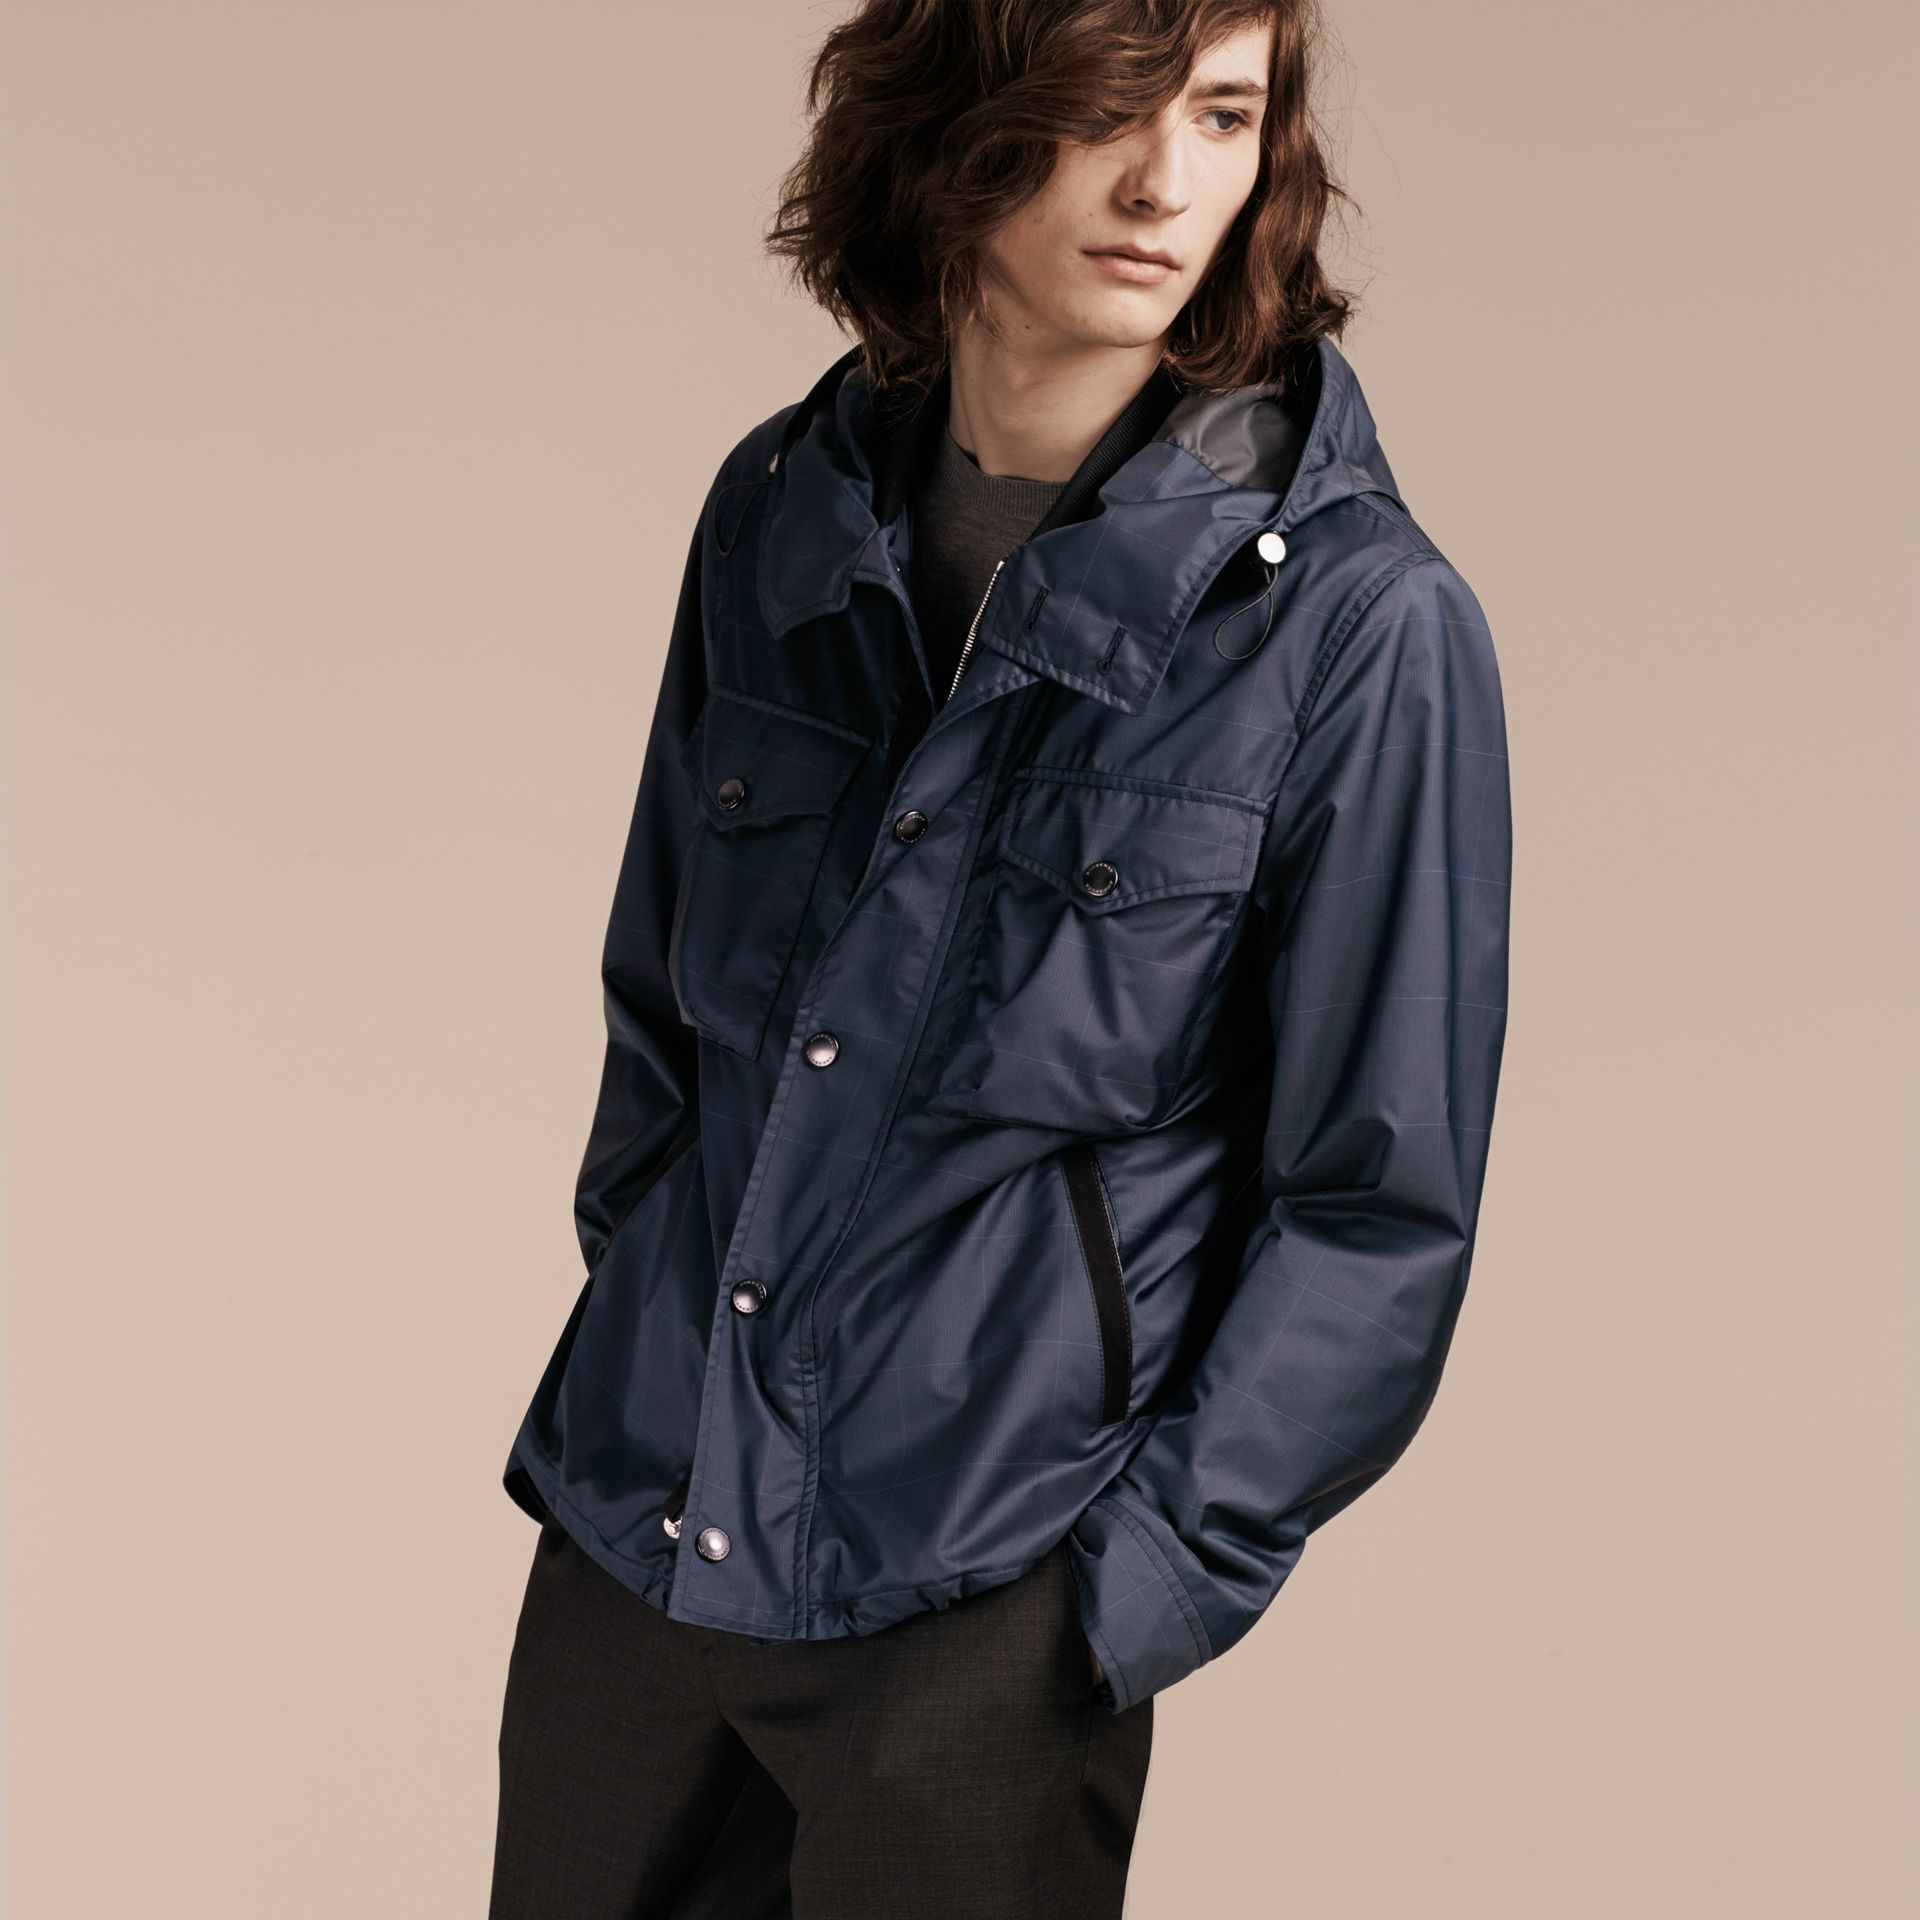 Navy Hooded Technical Jacket with Lambskin Trim - gallery image 7